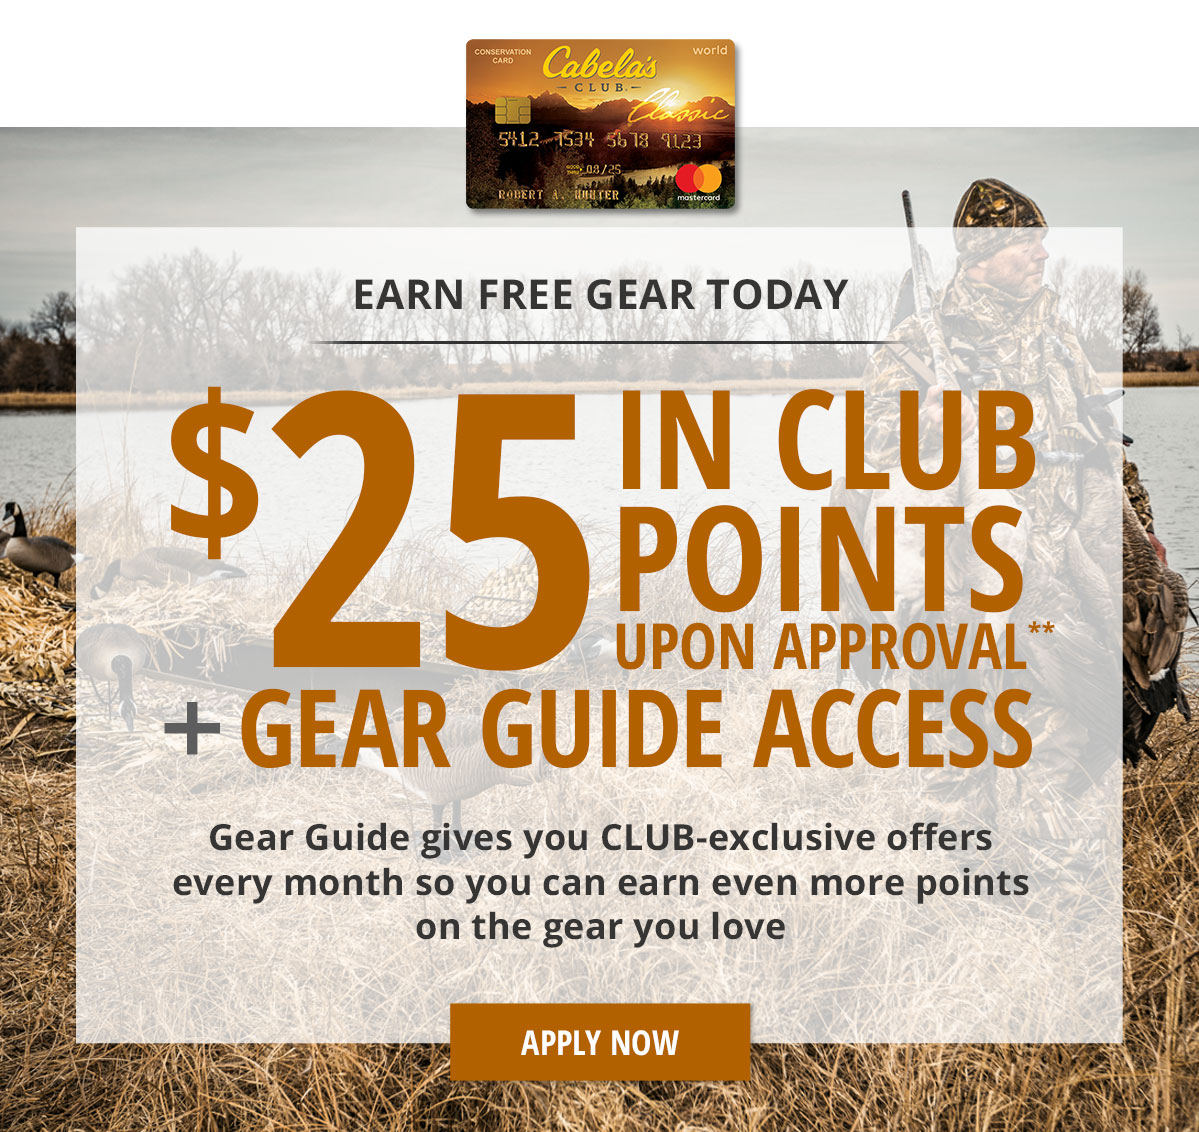 EARN UP TO $100 IN CLUB POINTS - GET $25 IN CLUB POINTS FOR EVERY $250 SPENT*